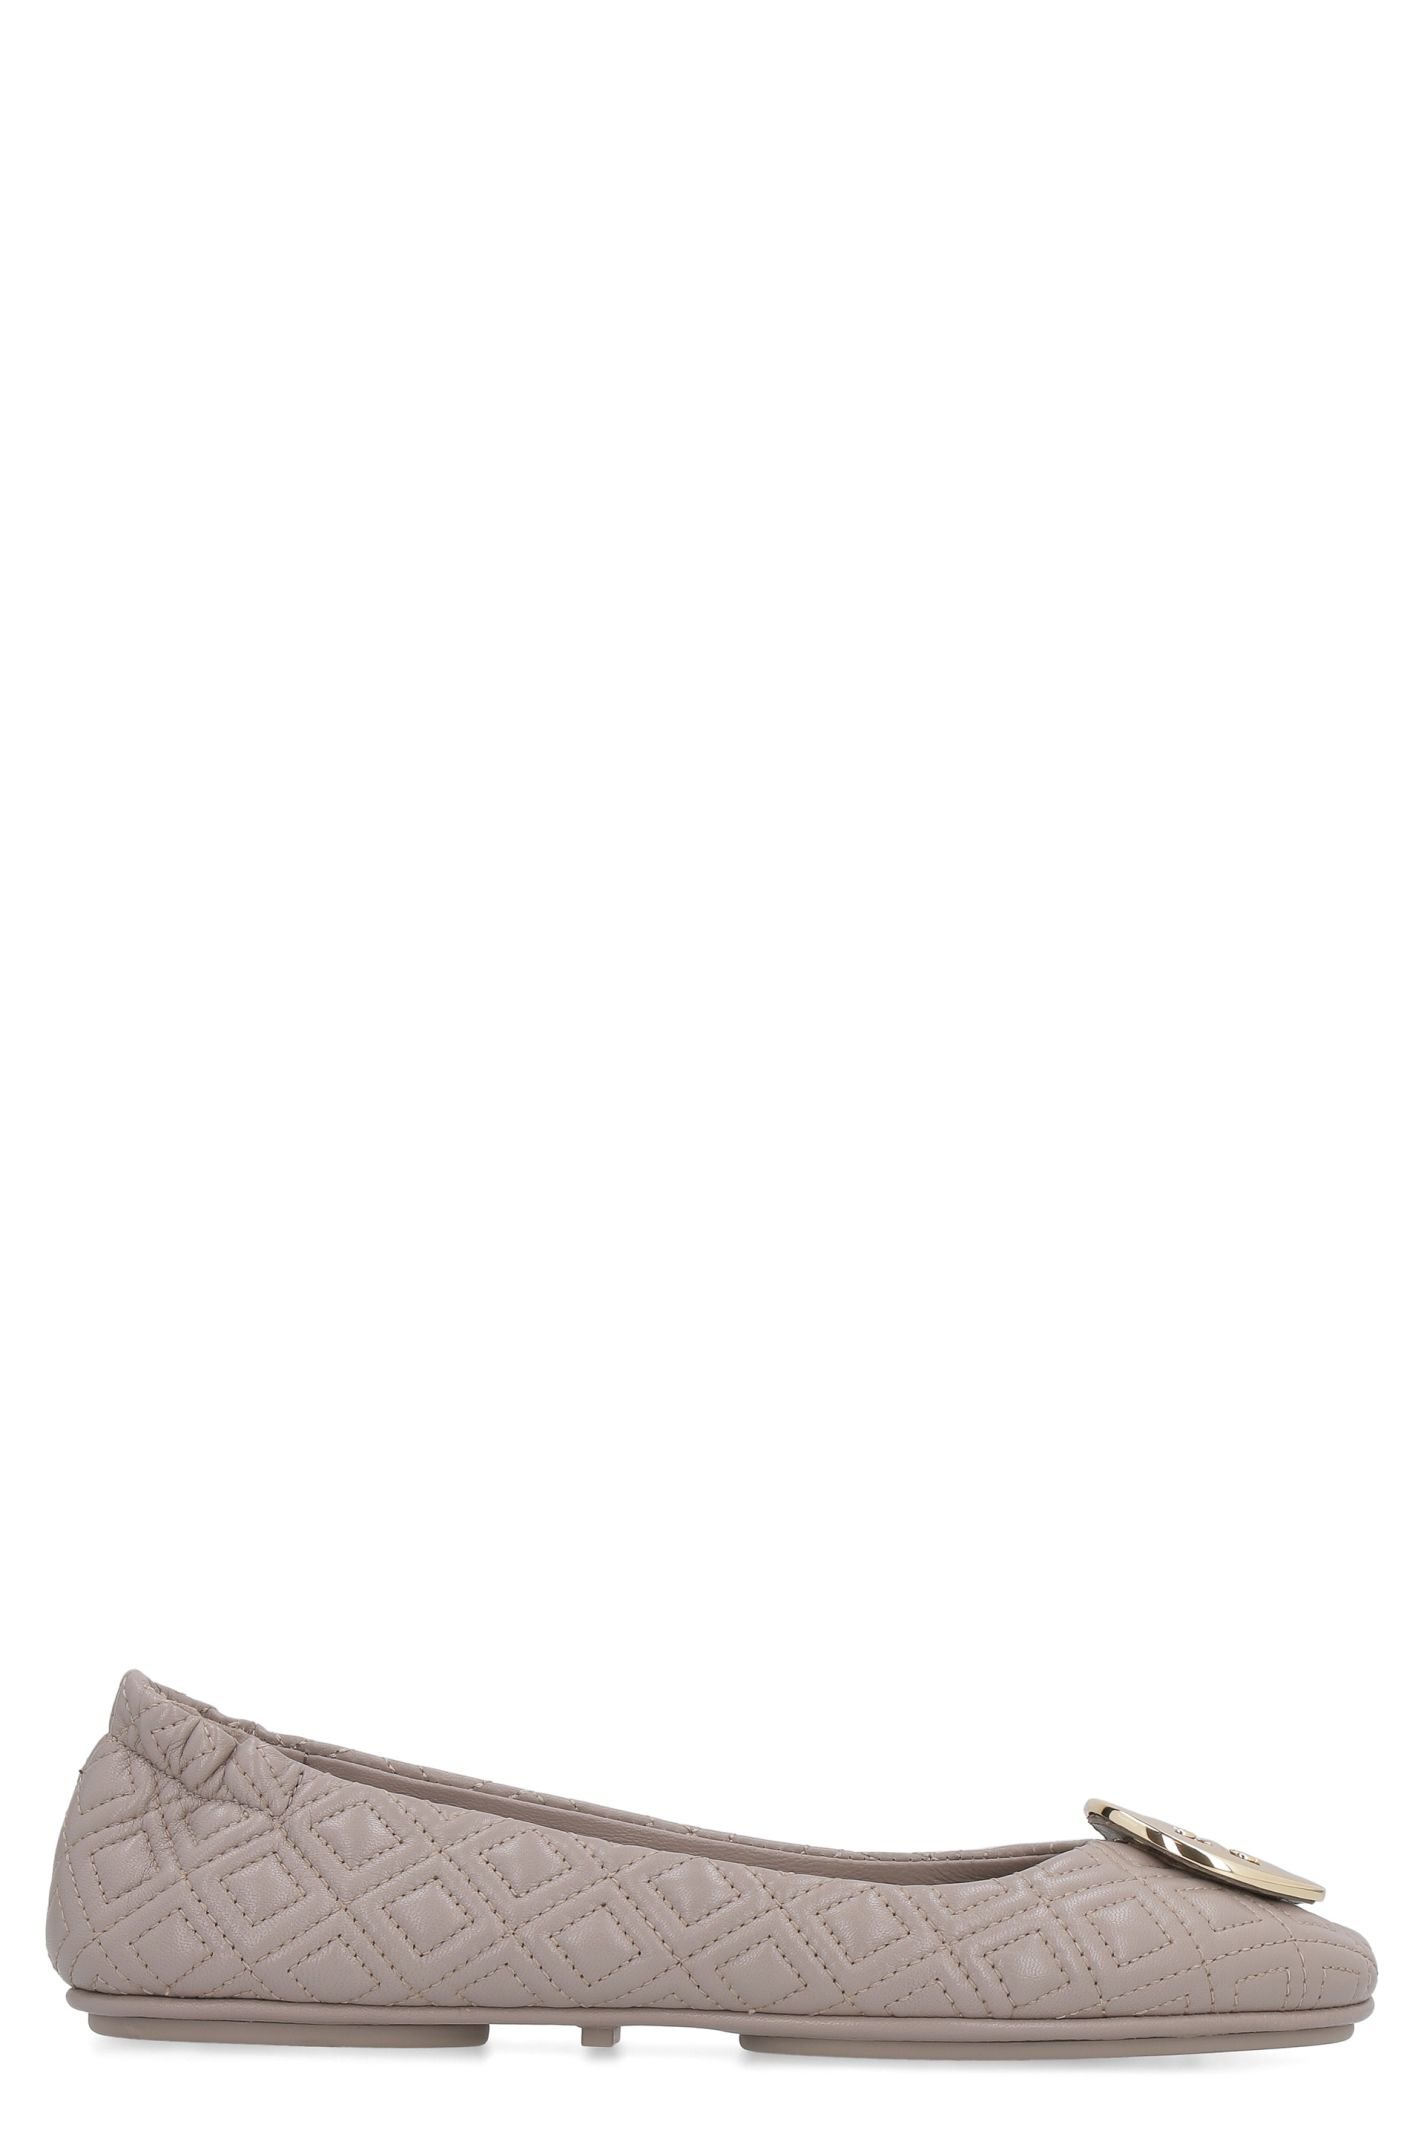 Tory Burch Minnie Leather Travel Ballet Flats In Grey